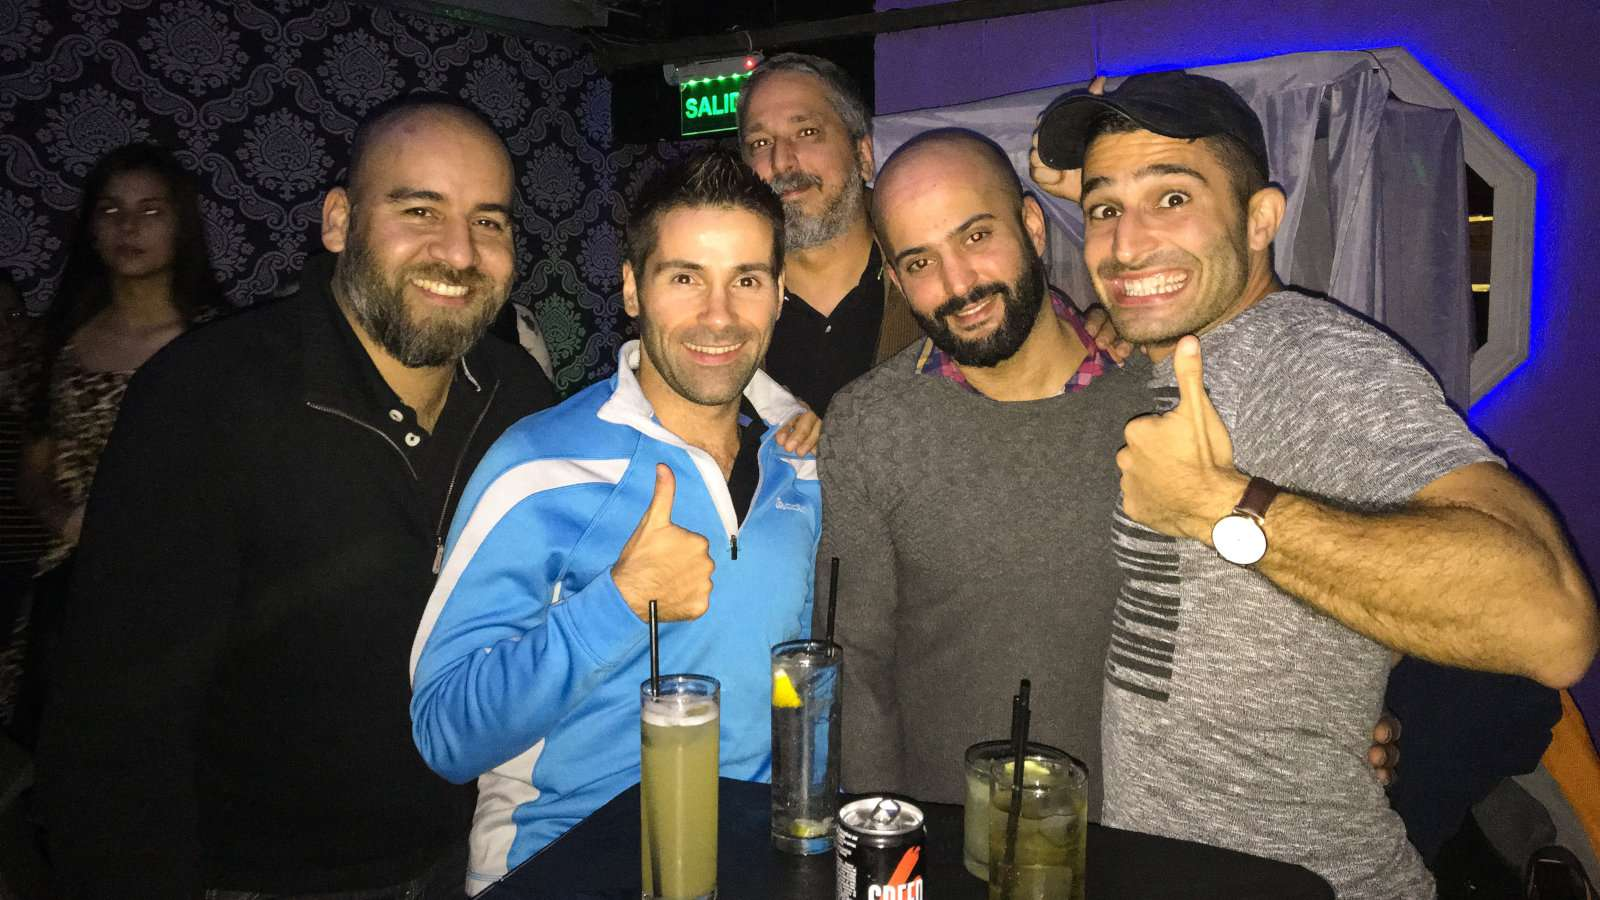 Drinks at one of the bars in Theatron gay club Bogota